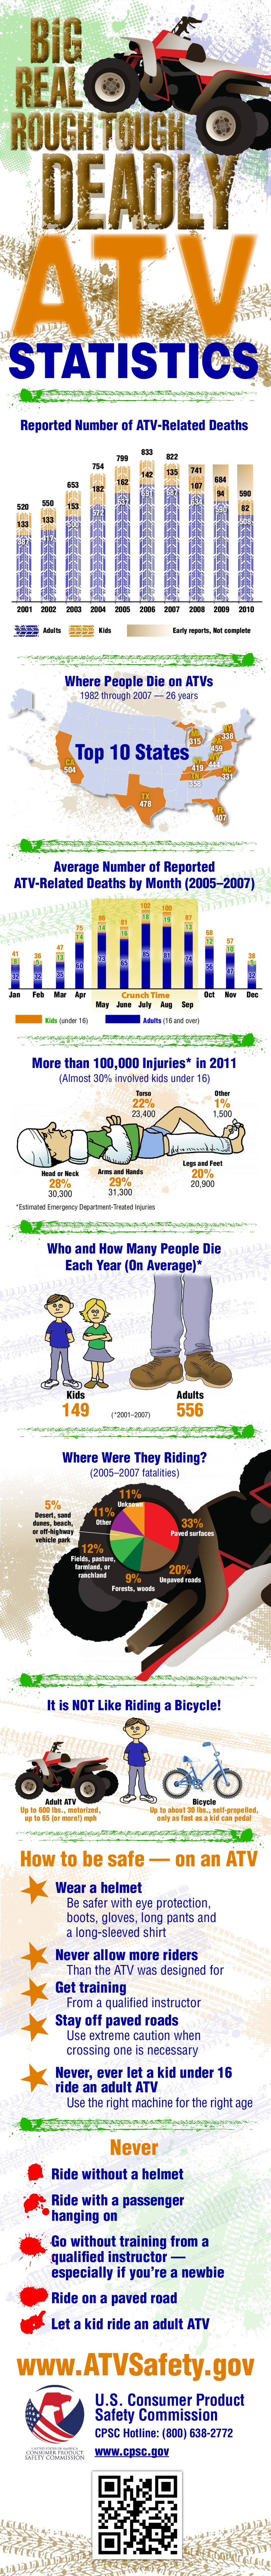 ATV Safety infographic Infographic